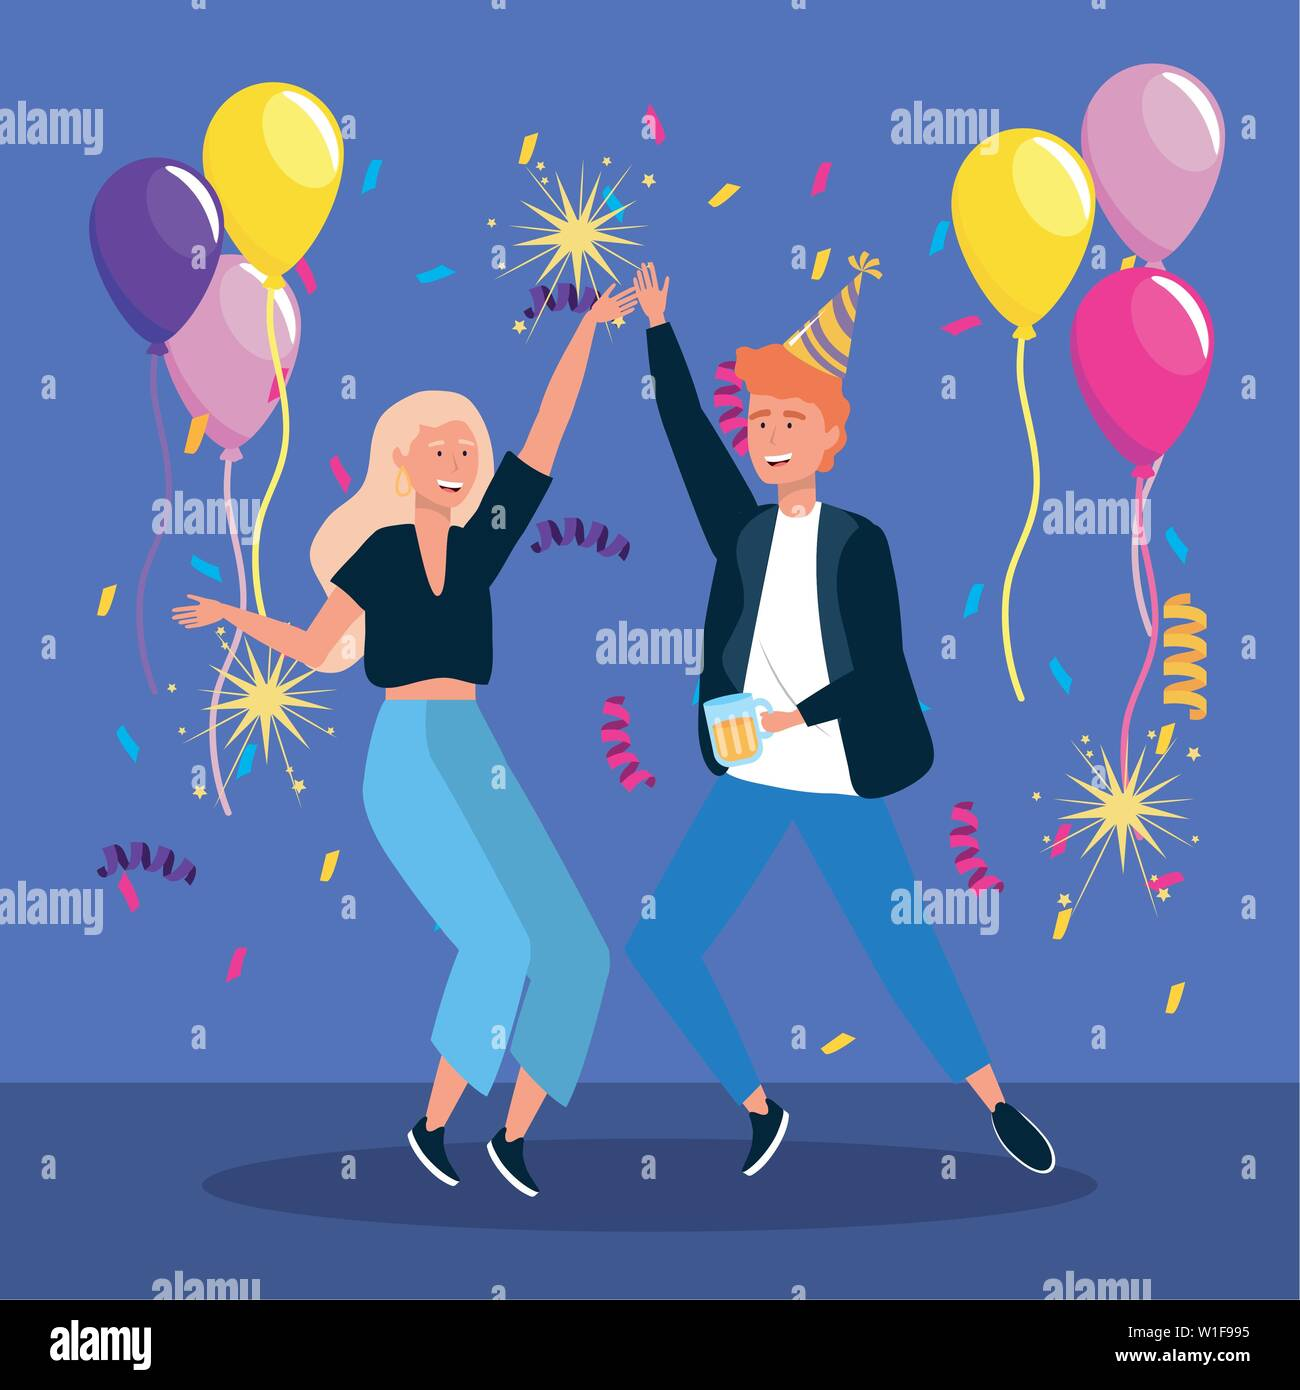 man and woman dancing with balloons and sparklers fireworks to party celebration, vector illustration - Stock Vector